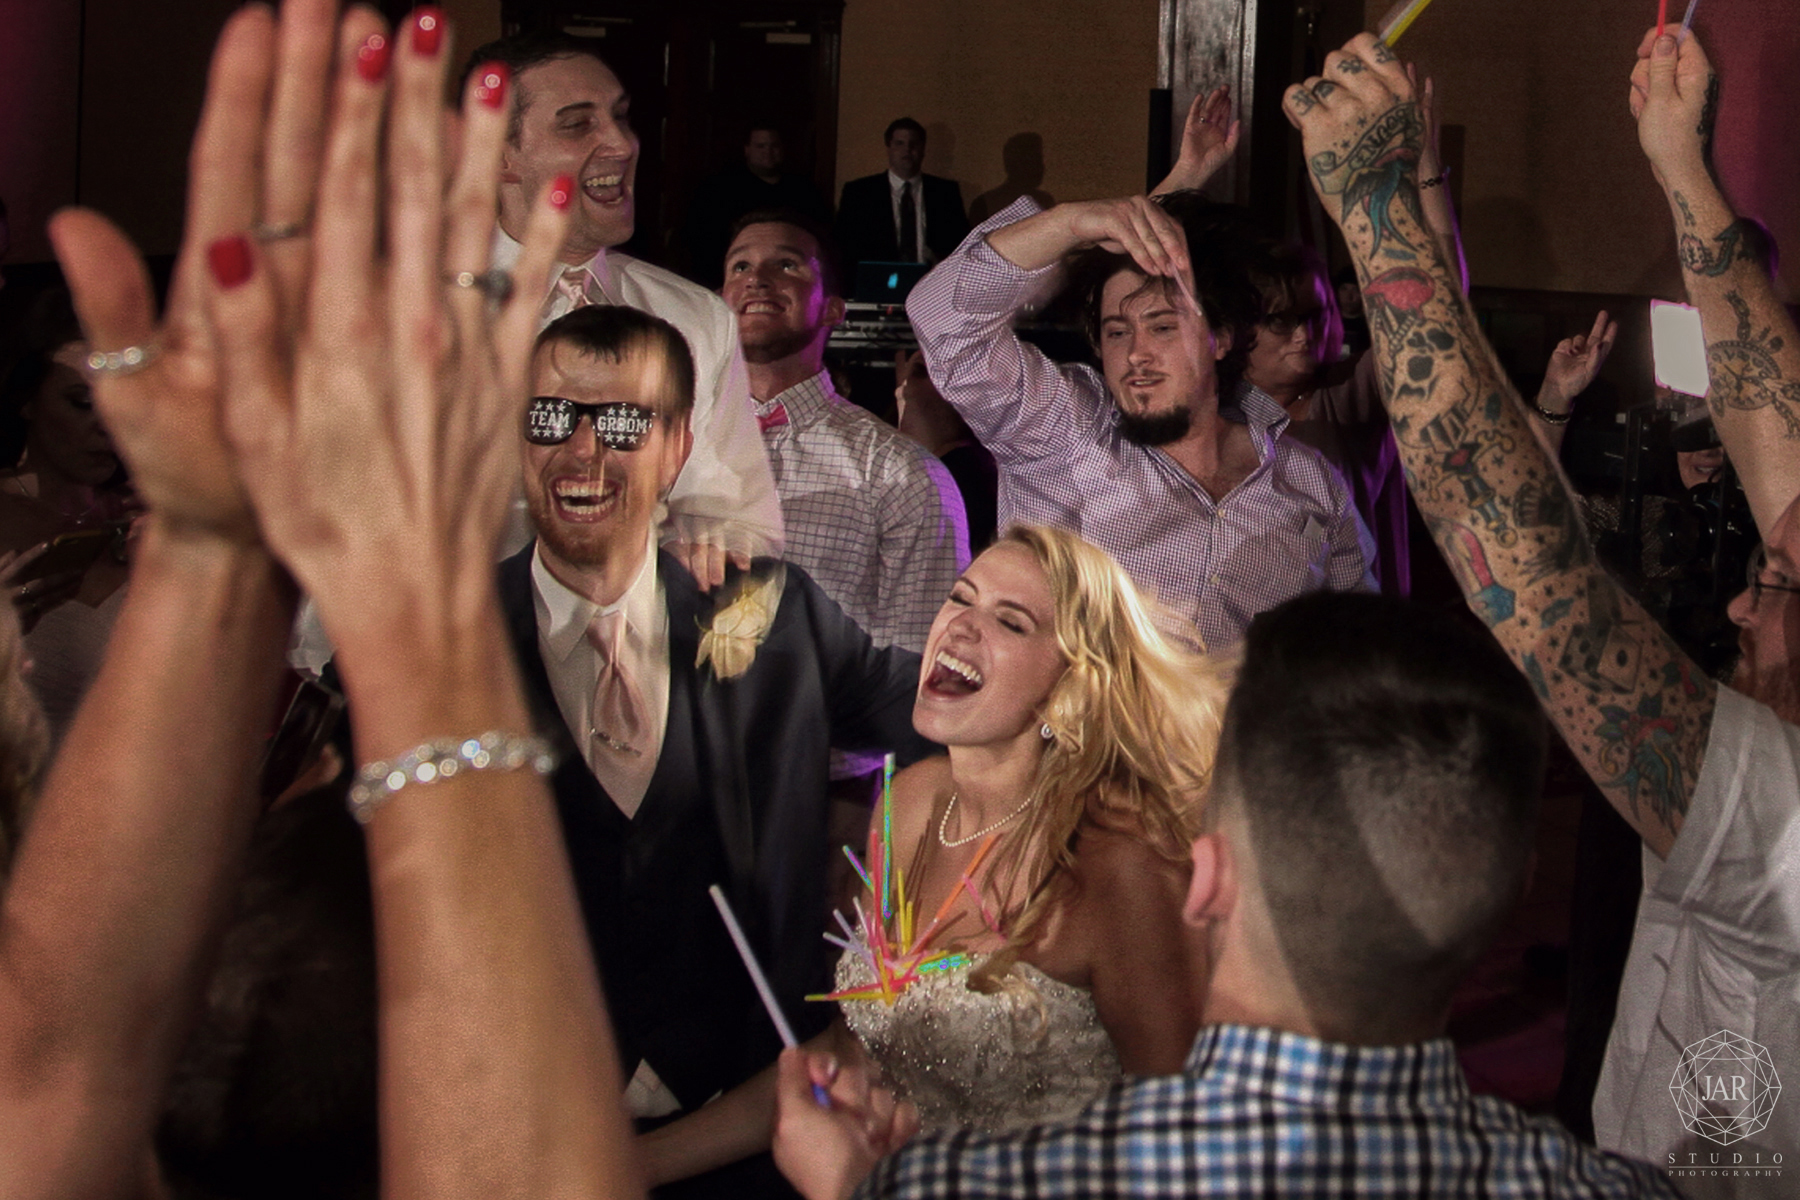 27-crazy-fun-reception-the-ballroom-at-church-street-jarstudio-photography.jpg